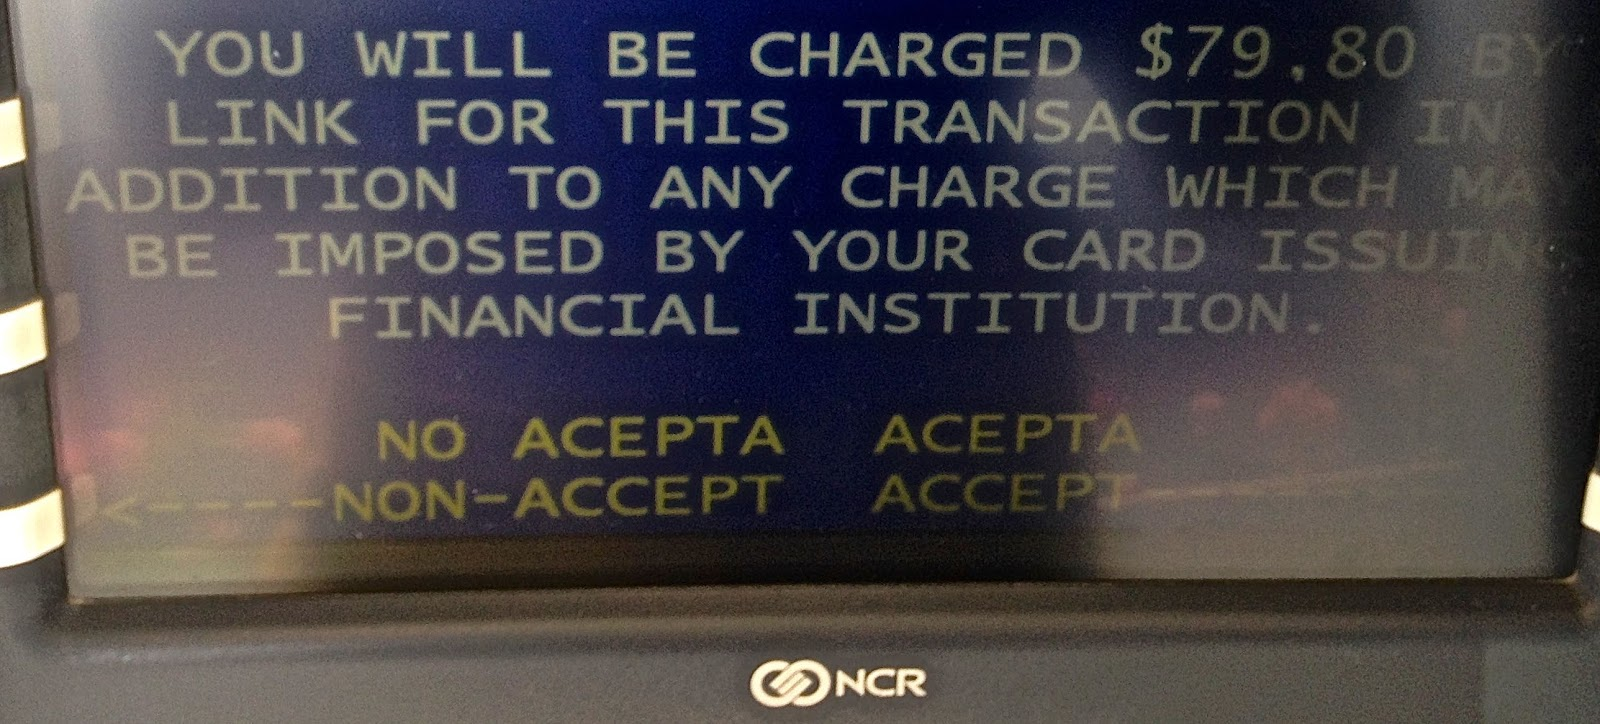 Southern Cone Travel: Avoiding Argentine ATMs Advisable - Still